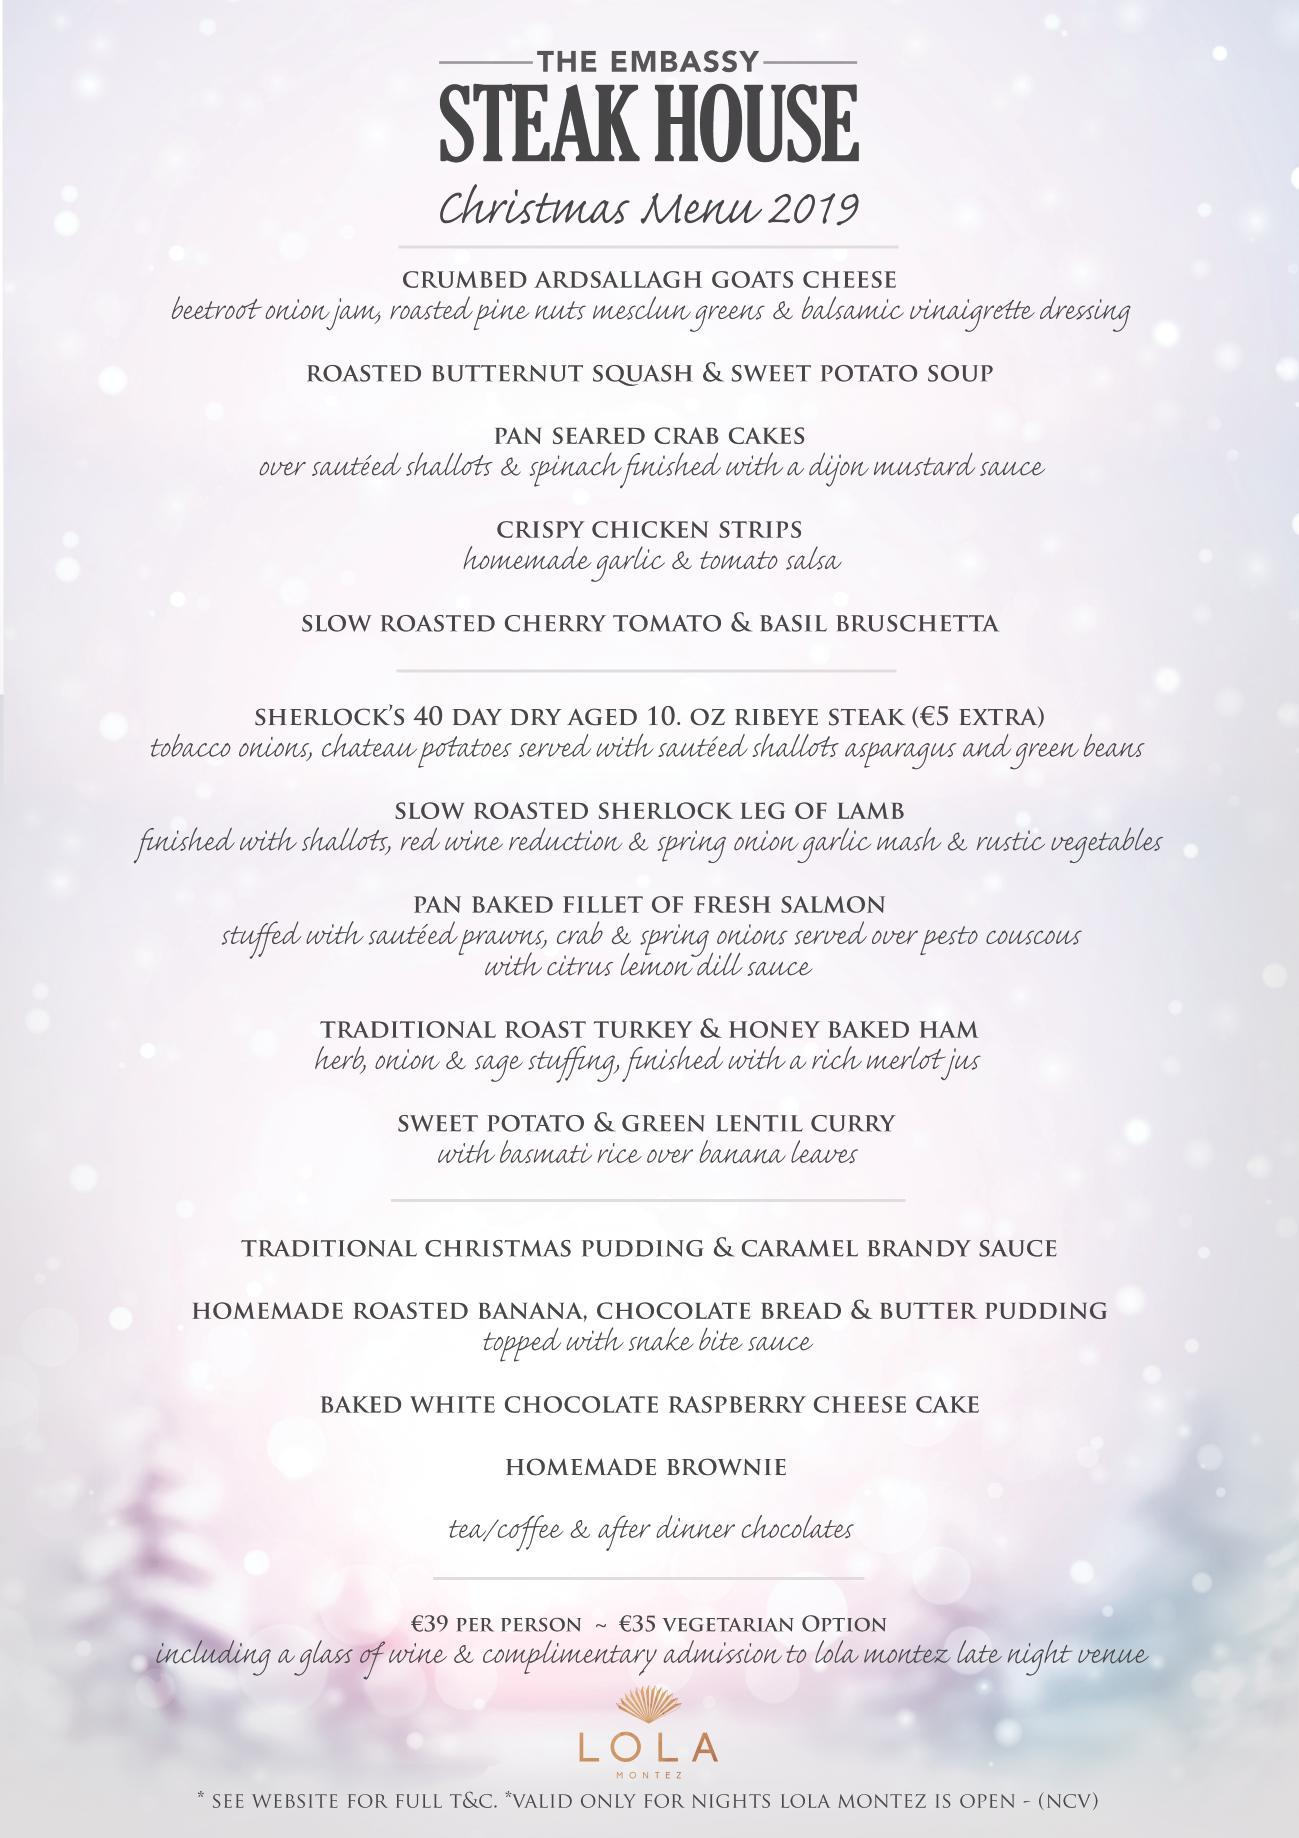 Embassy Steakhouse Christmas Menu 2019 Main